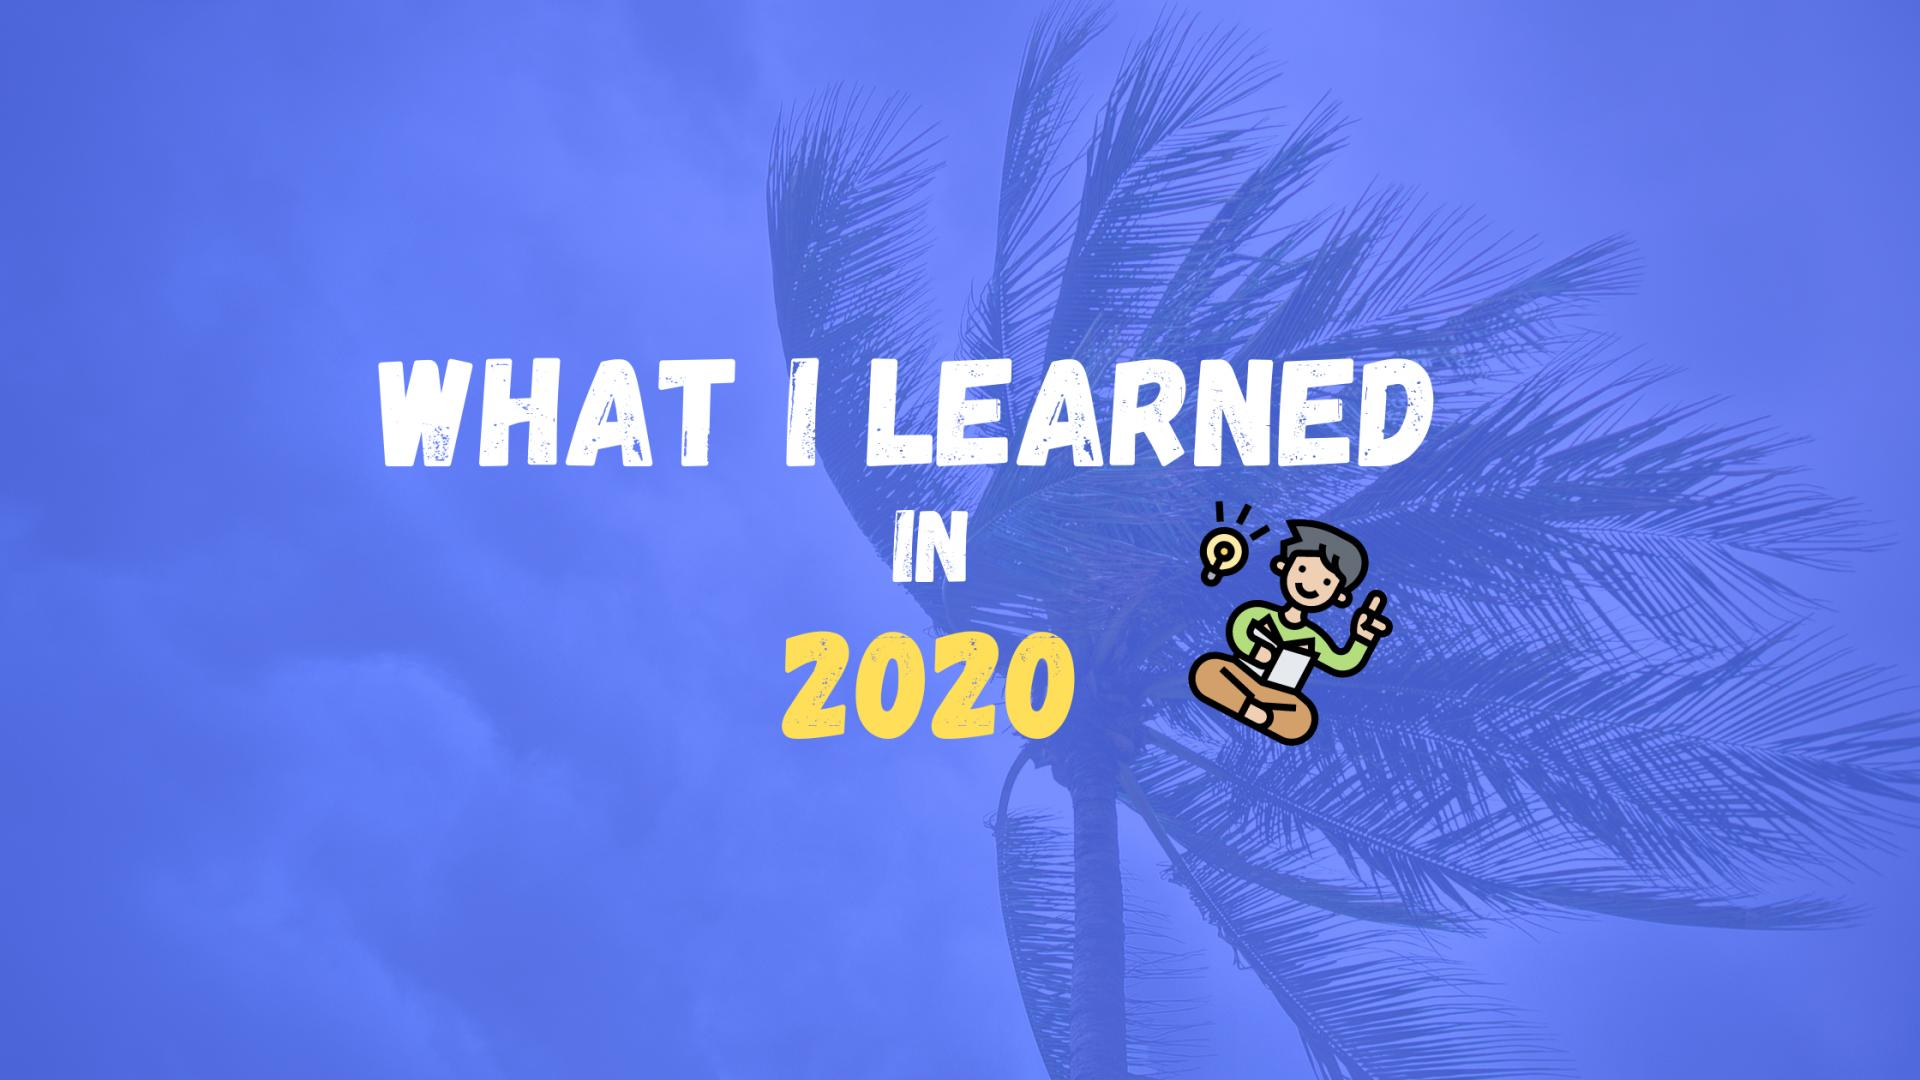 What I learned during 2020